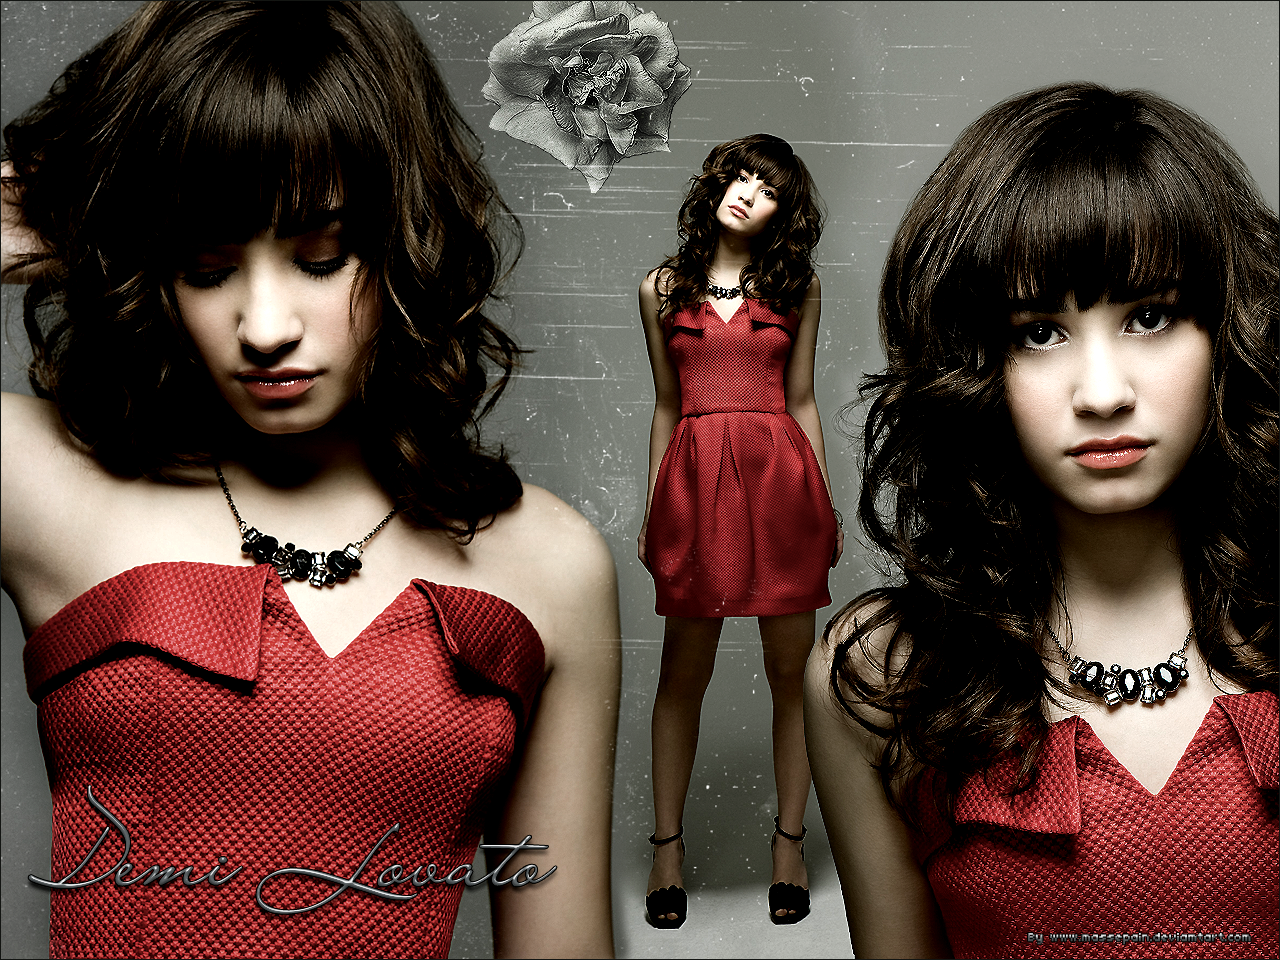 Enjoy this new Demi Lovato desktop background Demi Lovato wallpapers 1280x960